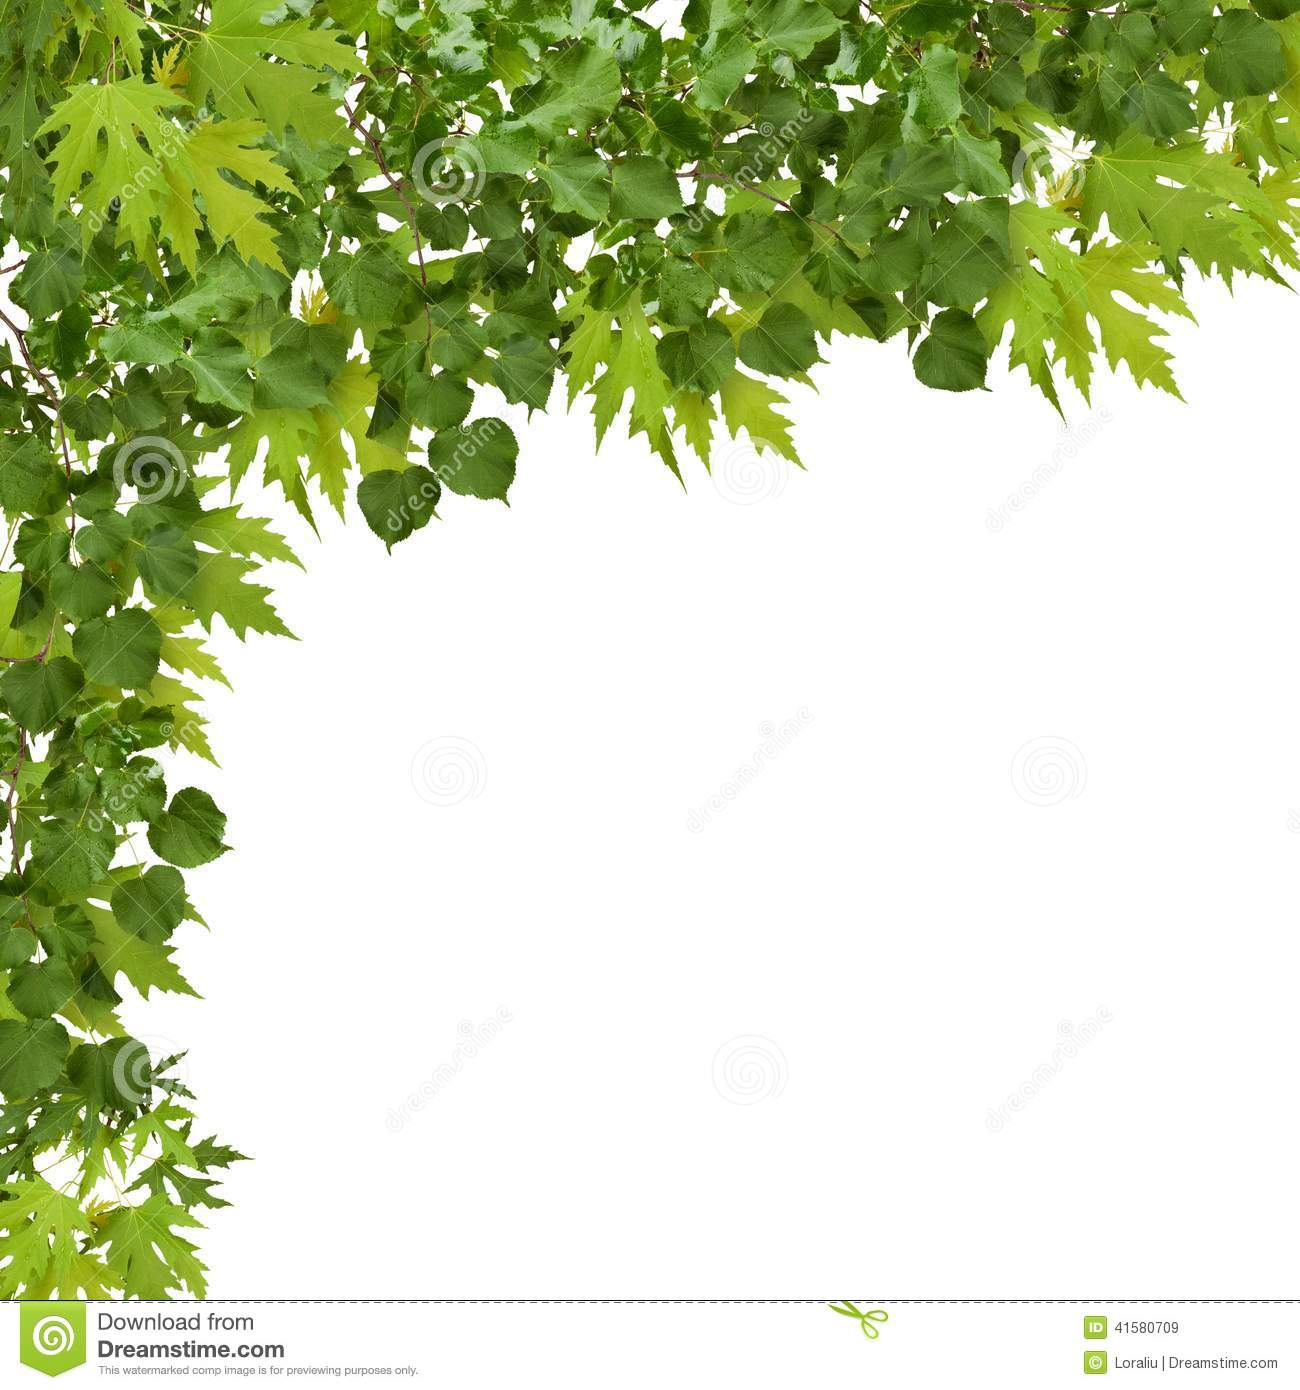 Branch of maple with green leaves isolated